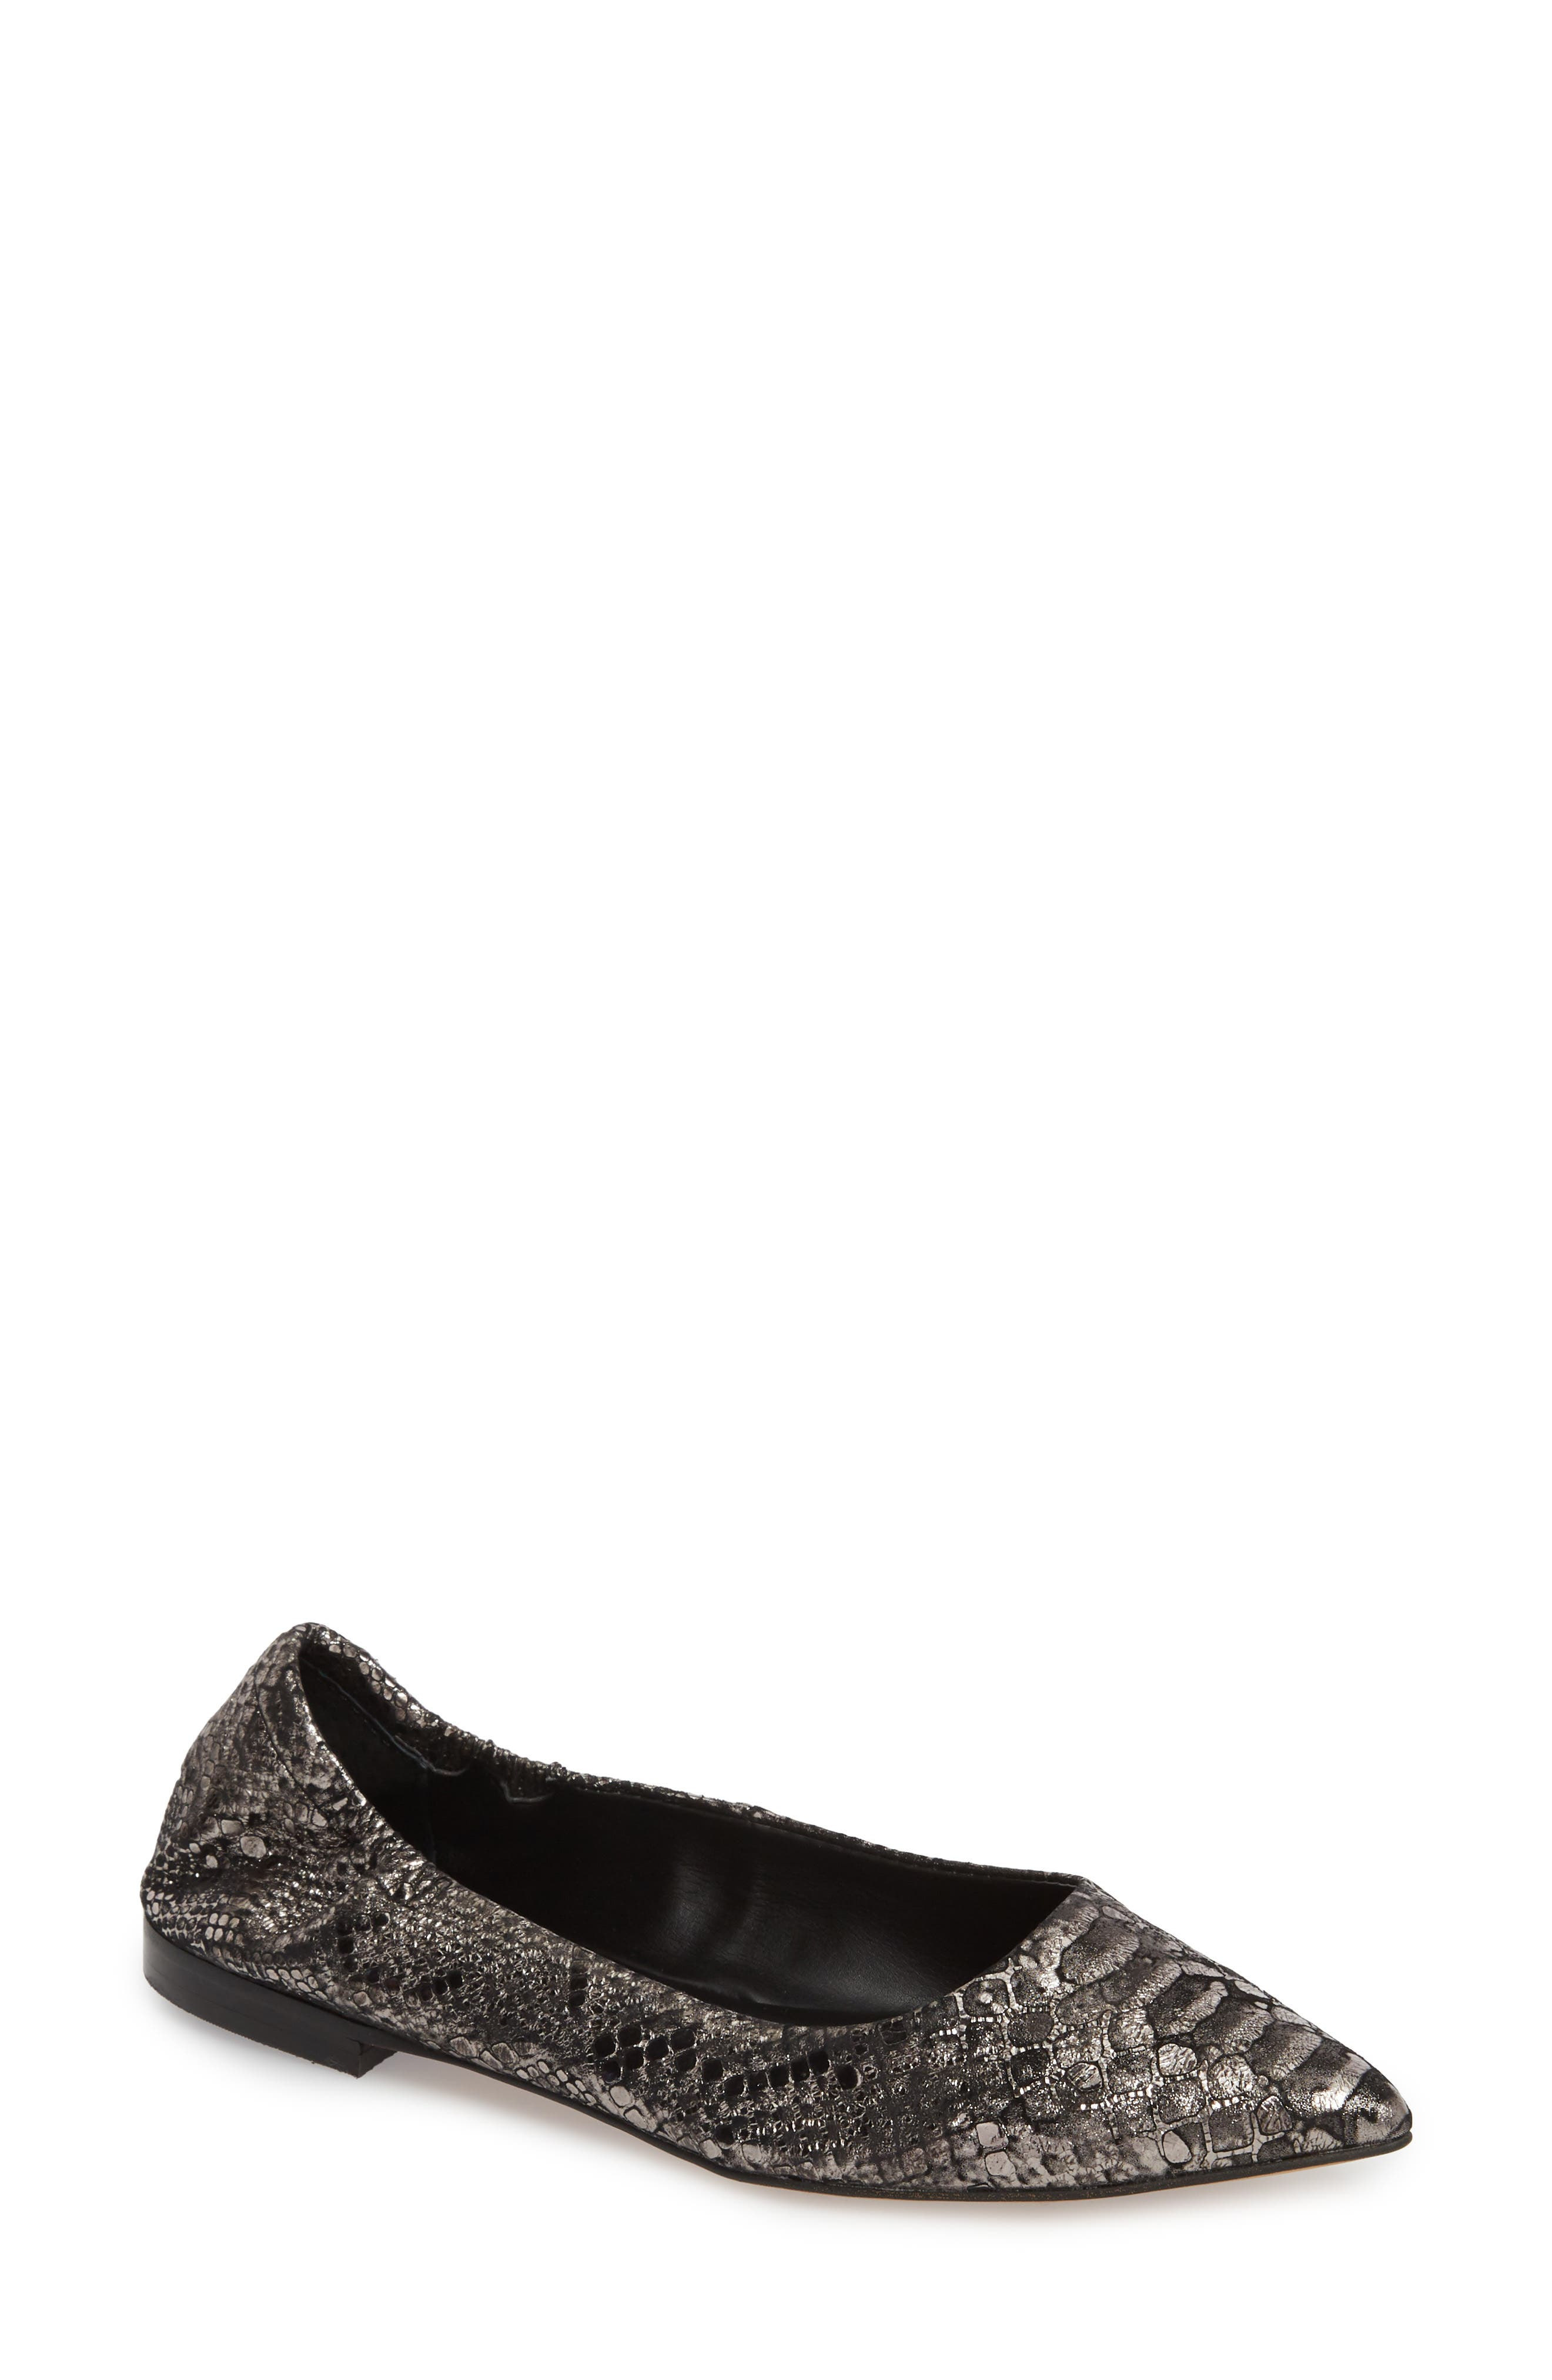 Isola Padra Pointy Toe Flat,                             Main thumbnail 1, color,                             PEWTER LEATHER